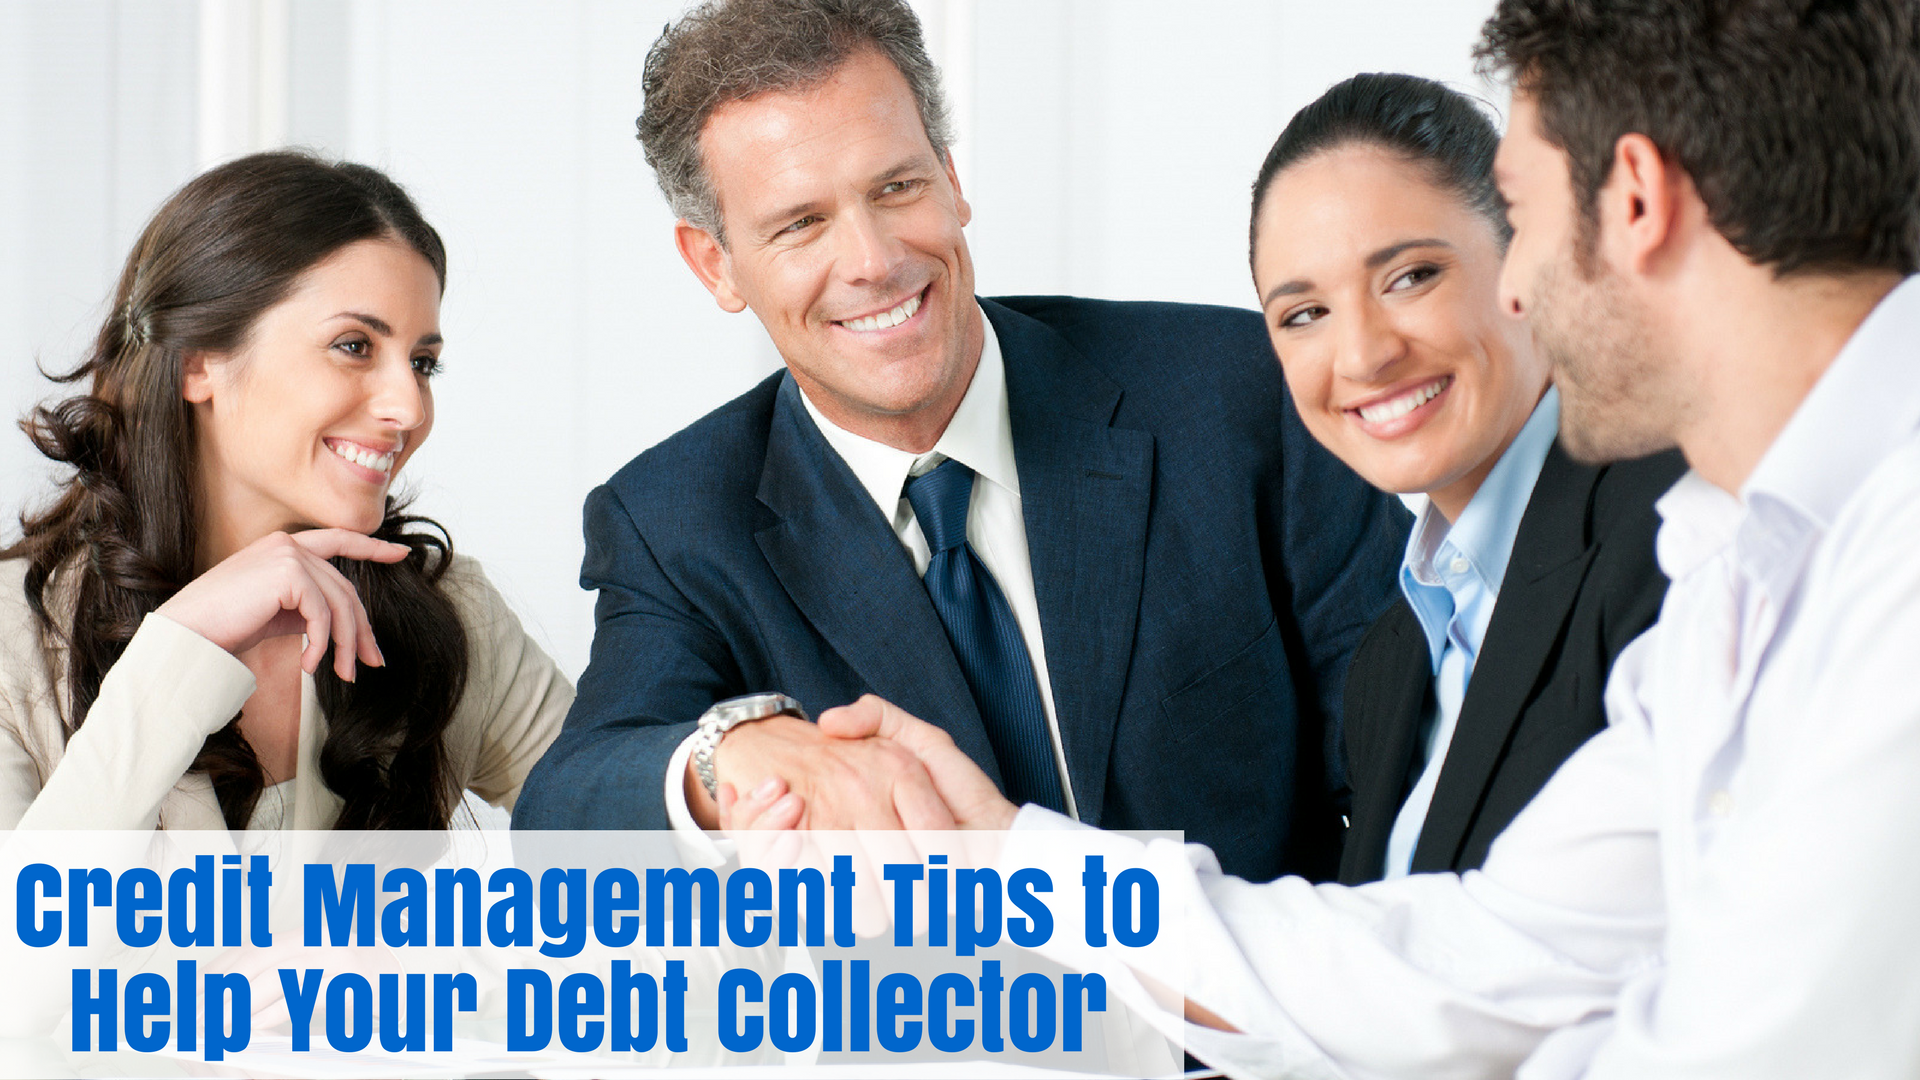 Credit Management Tips to Help Your Debt Collector